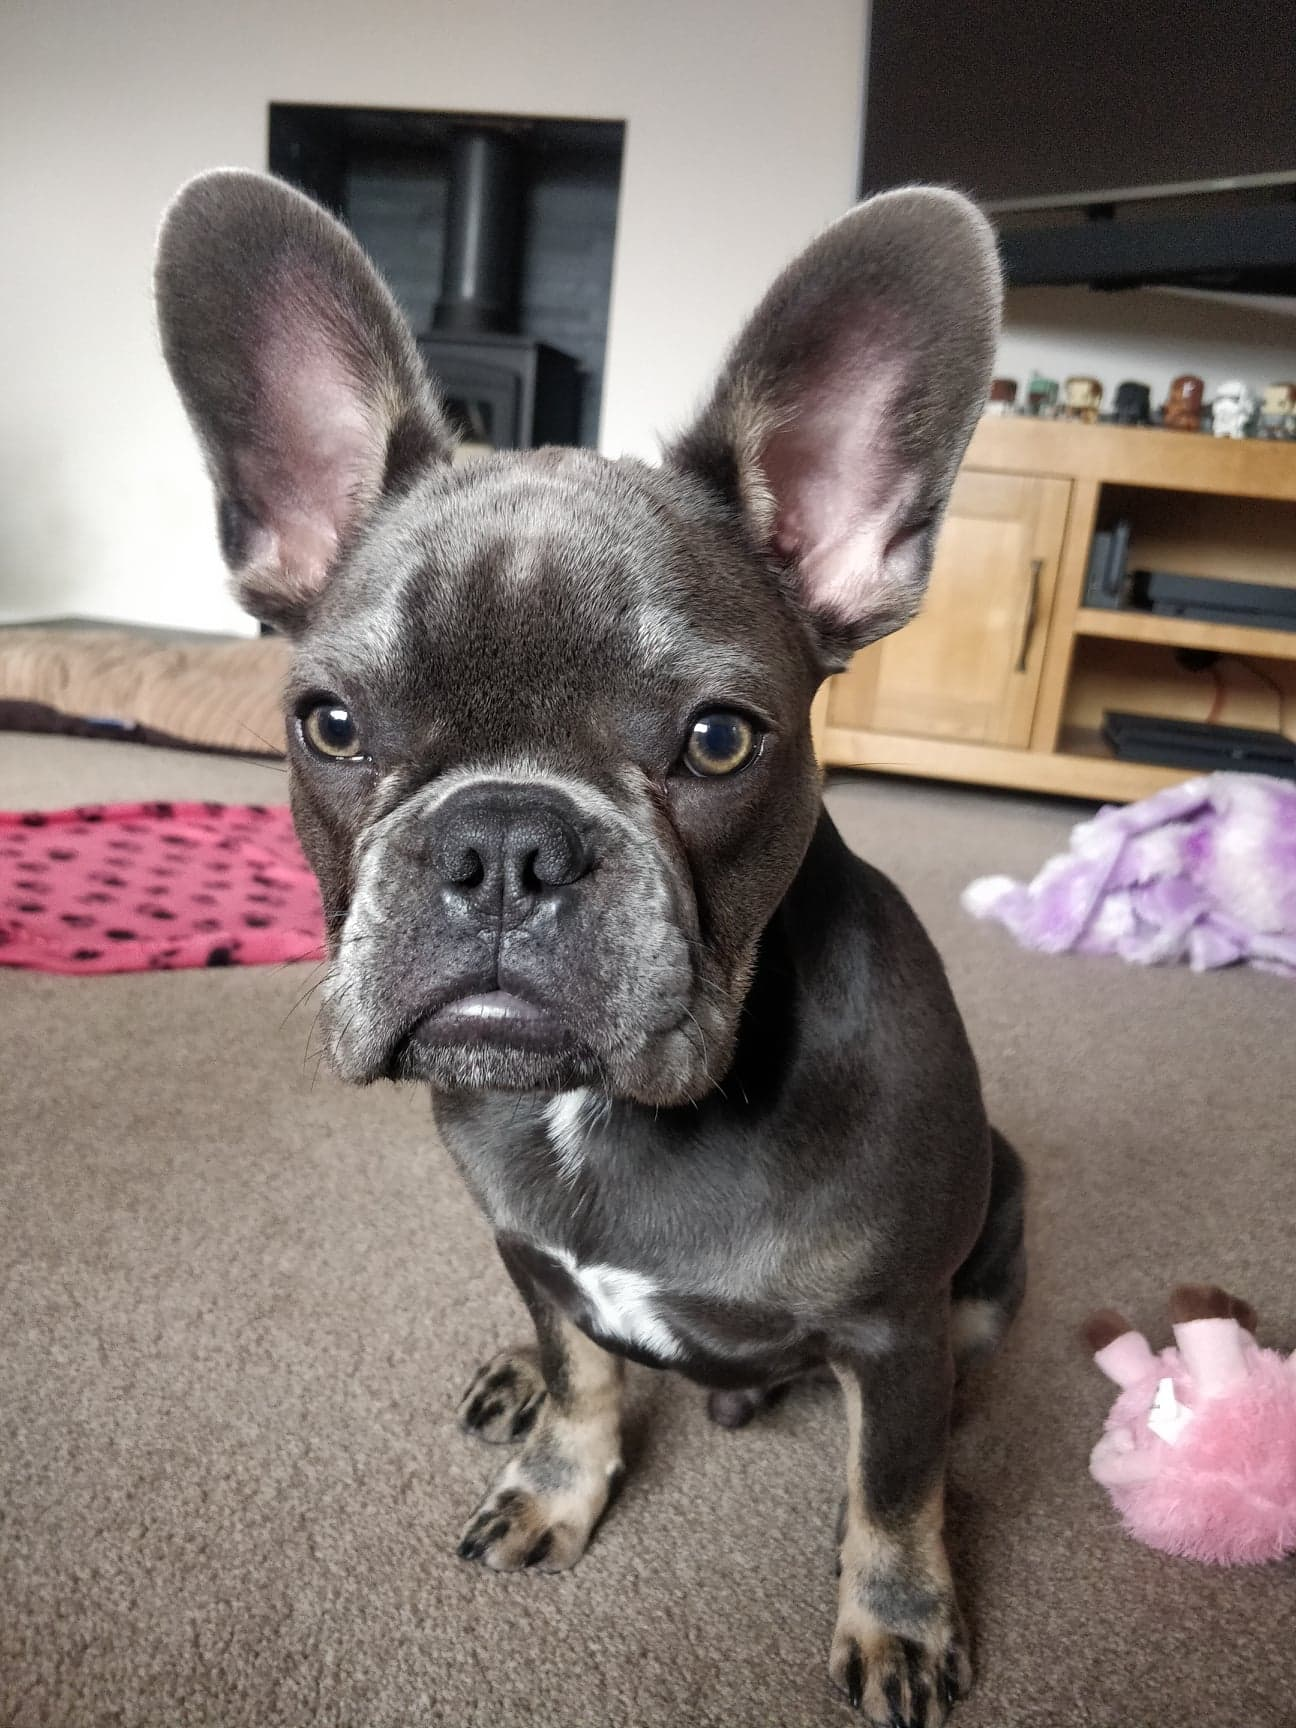 French Bulldog puppy doing dog training and learning to sit on command